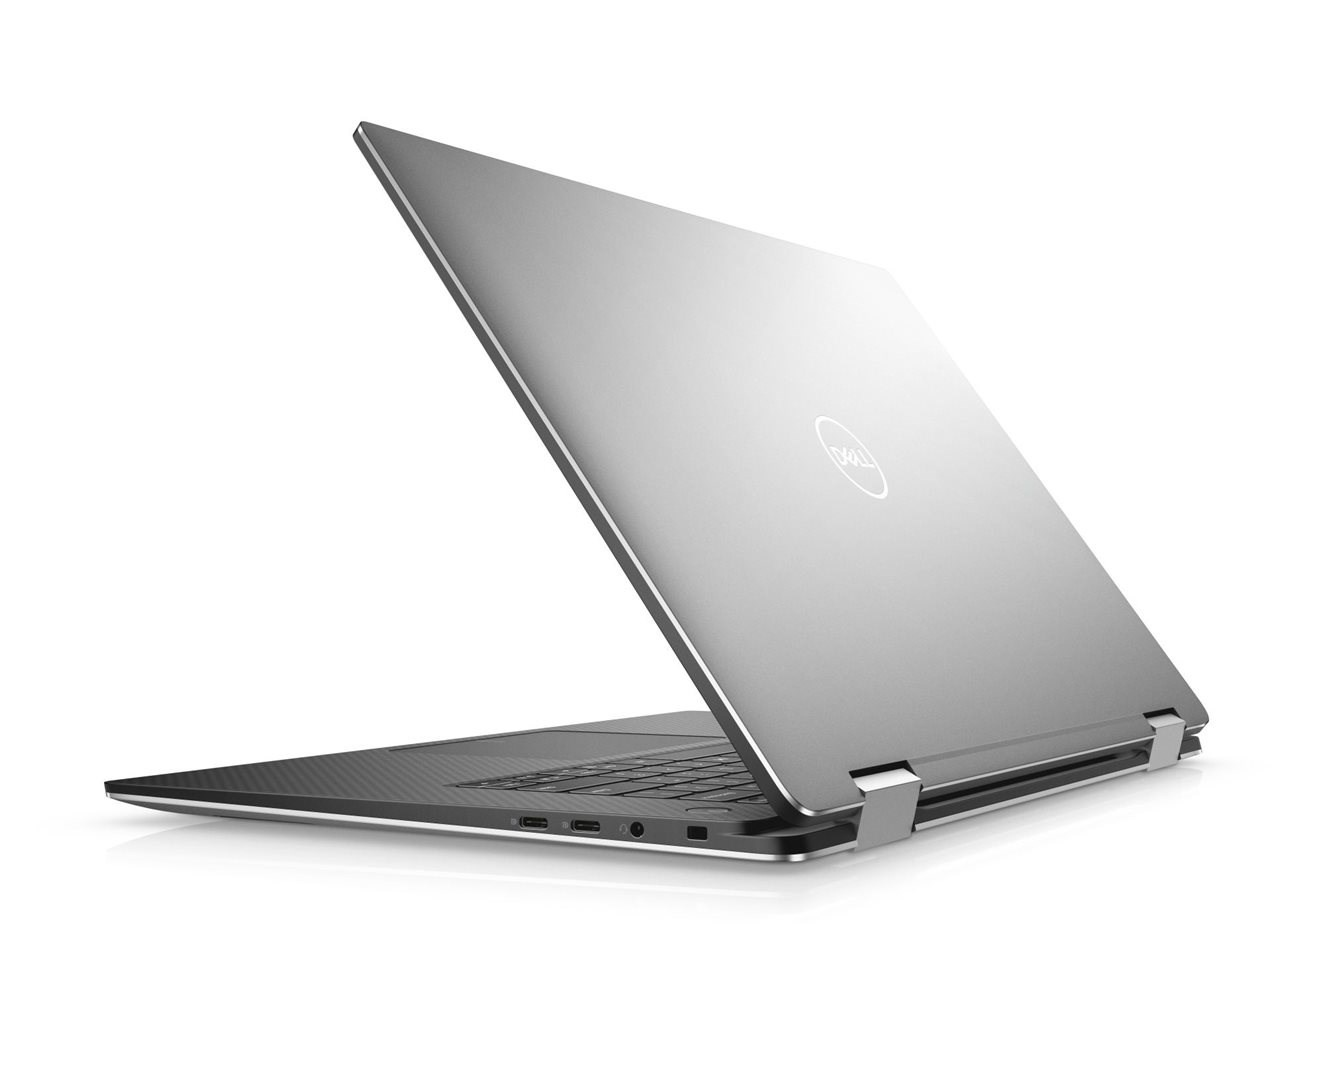 "DELL XPS 15 9575/Core i7-8705G/8GB/512GB SSD/15.6"" FHD Touch/Radeon RX 870/W10Pro/36M NBD OS"